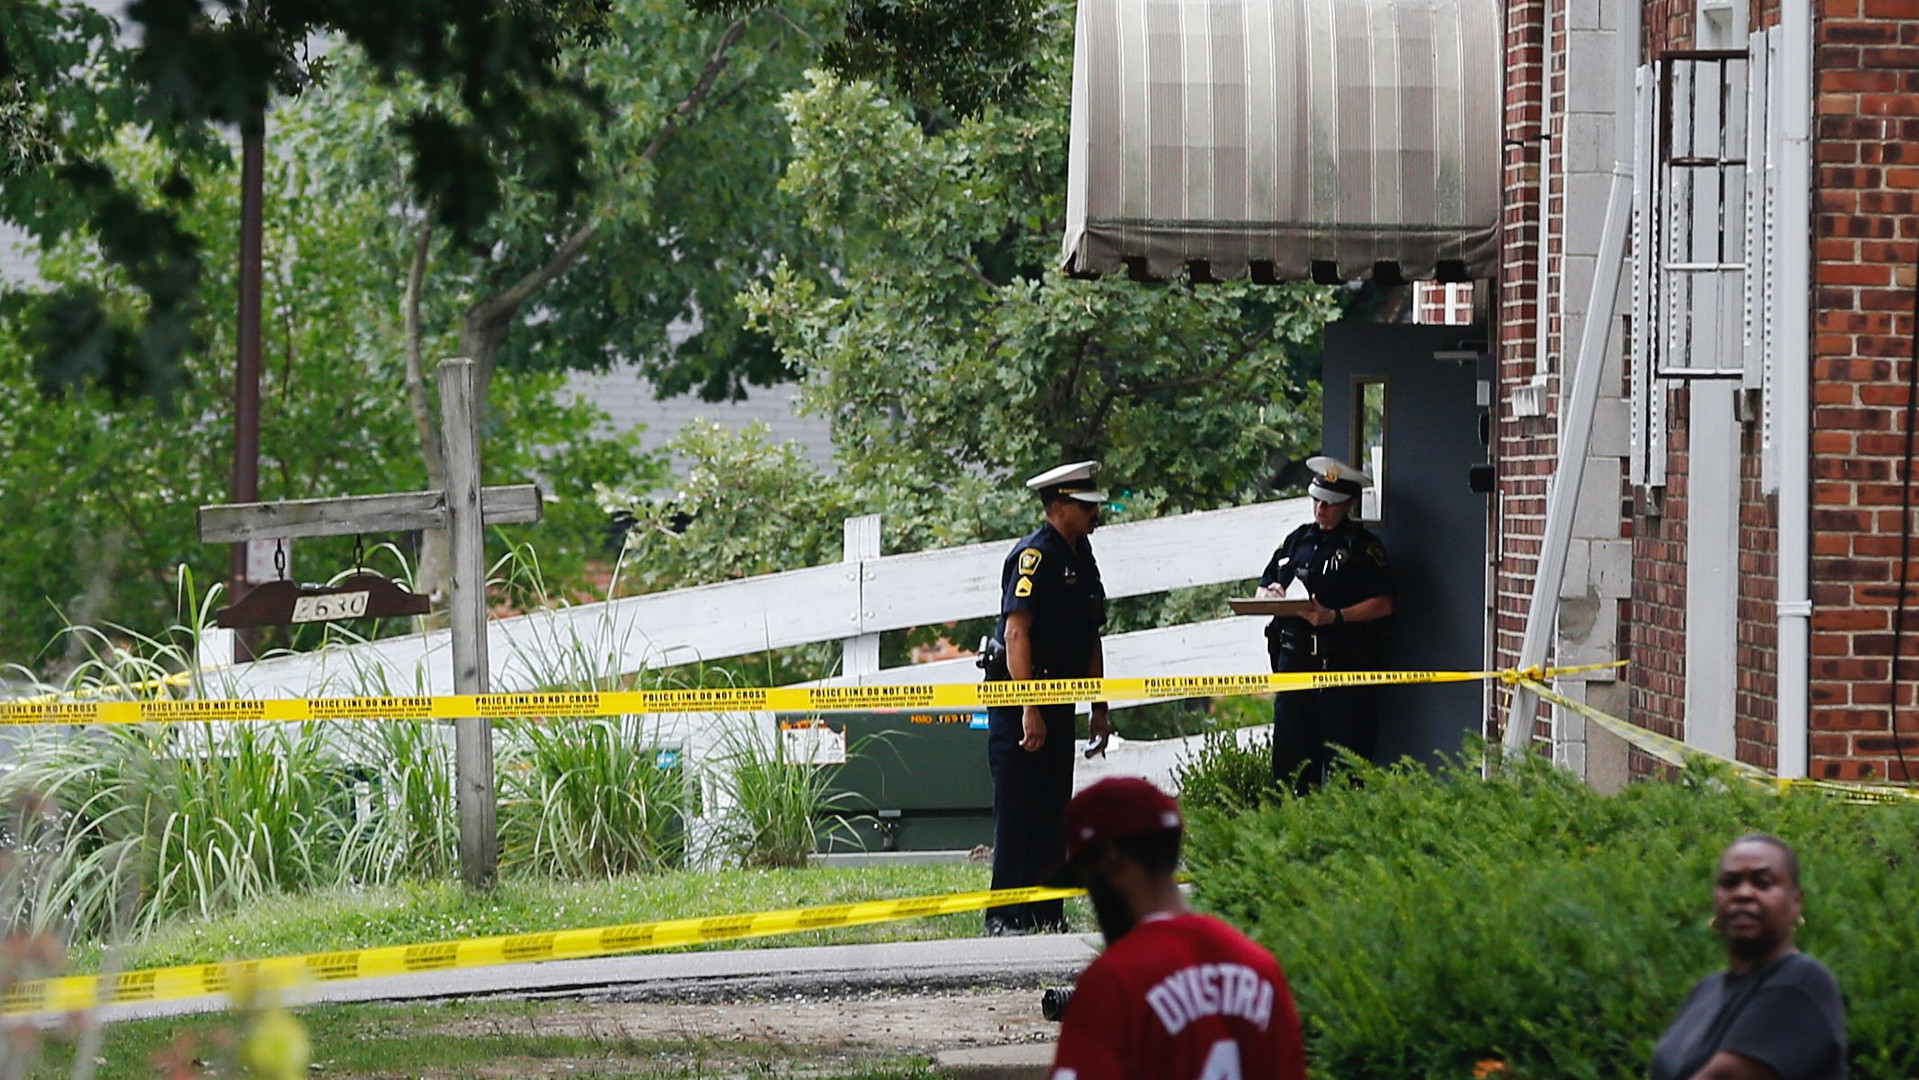 4 things we know about the police-involved shooting in Walnut Hills